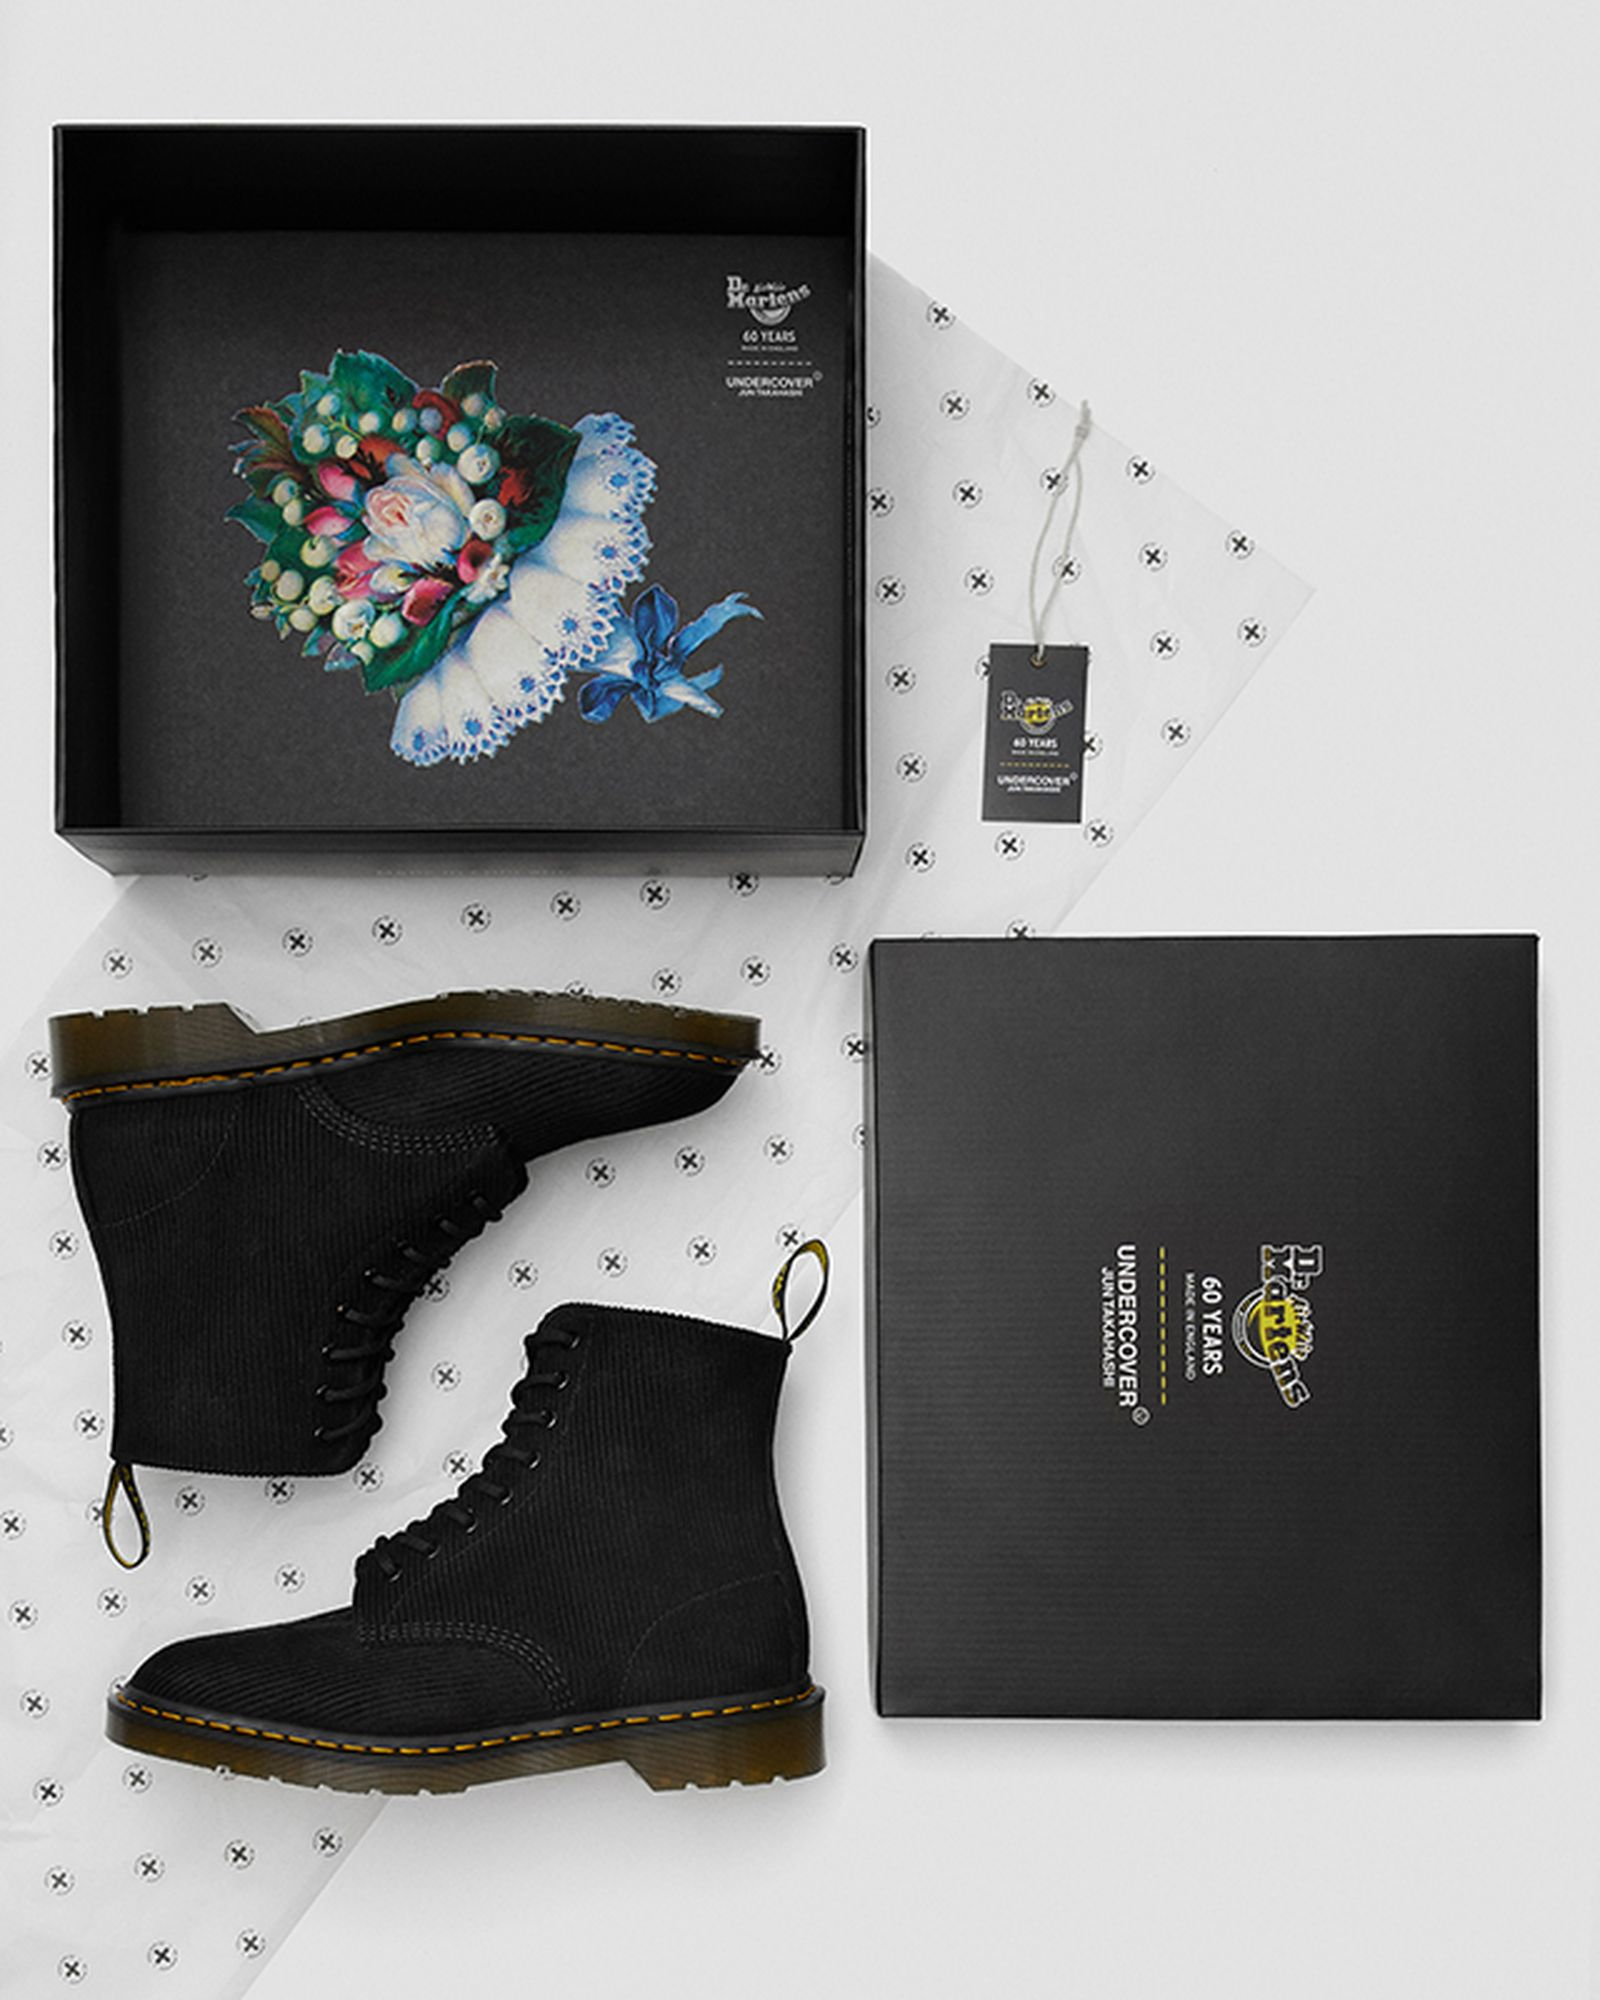 undercover-dr-martens-1460-release-date-price-10